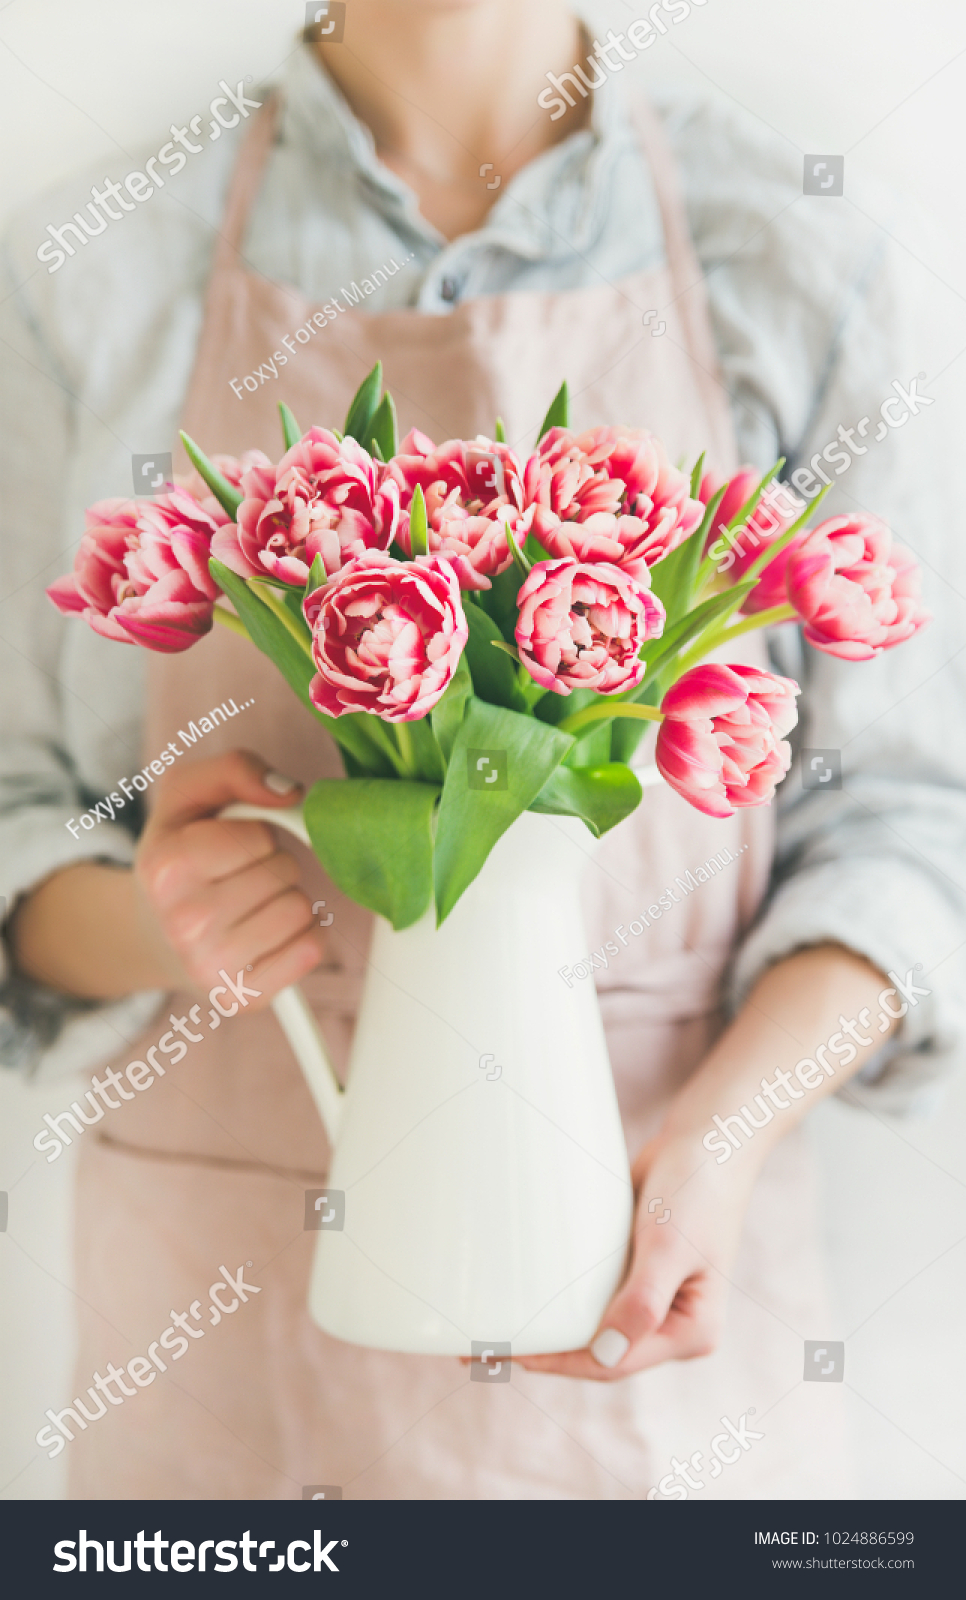 Spring Flowers Arrangement Woman Pastel Pink Stock Photo Edit Now 1024886599